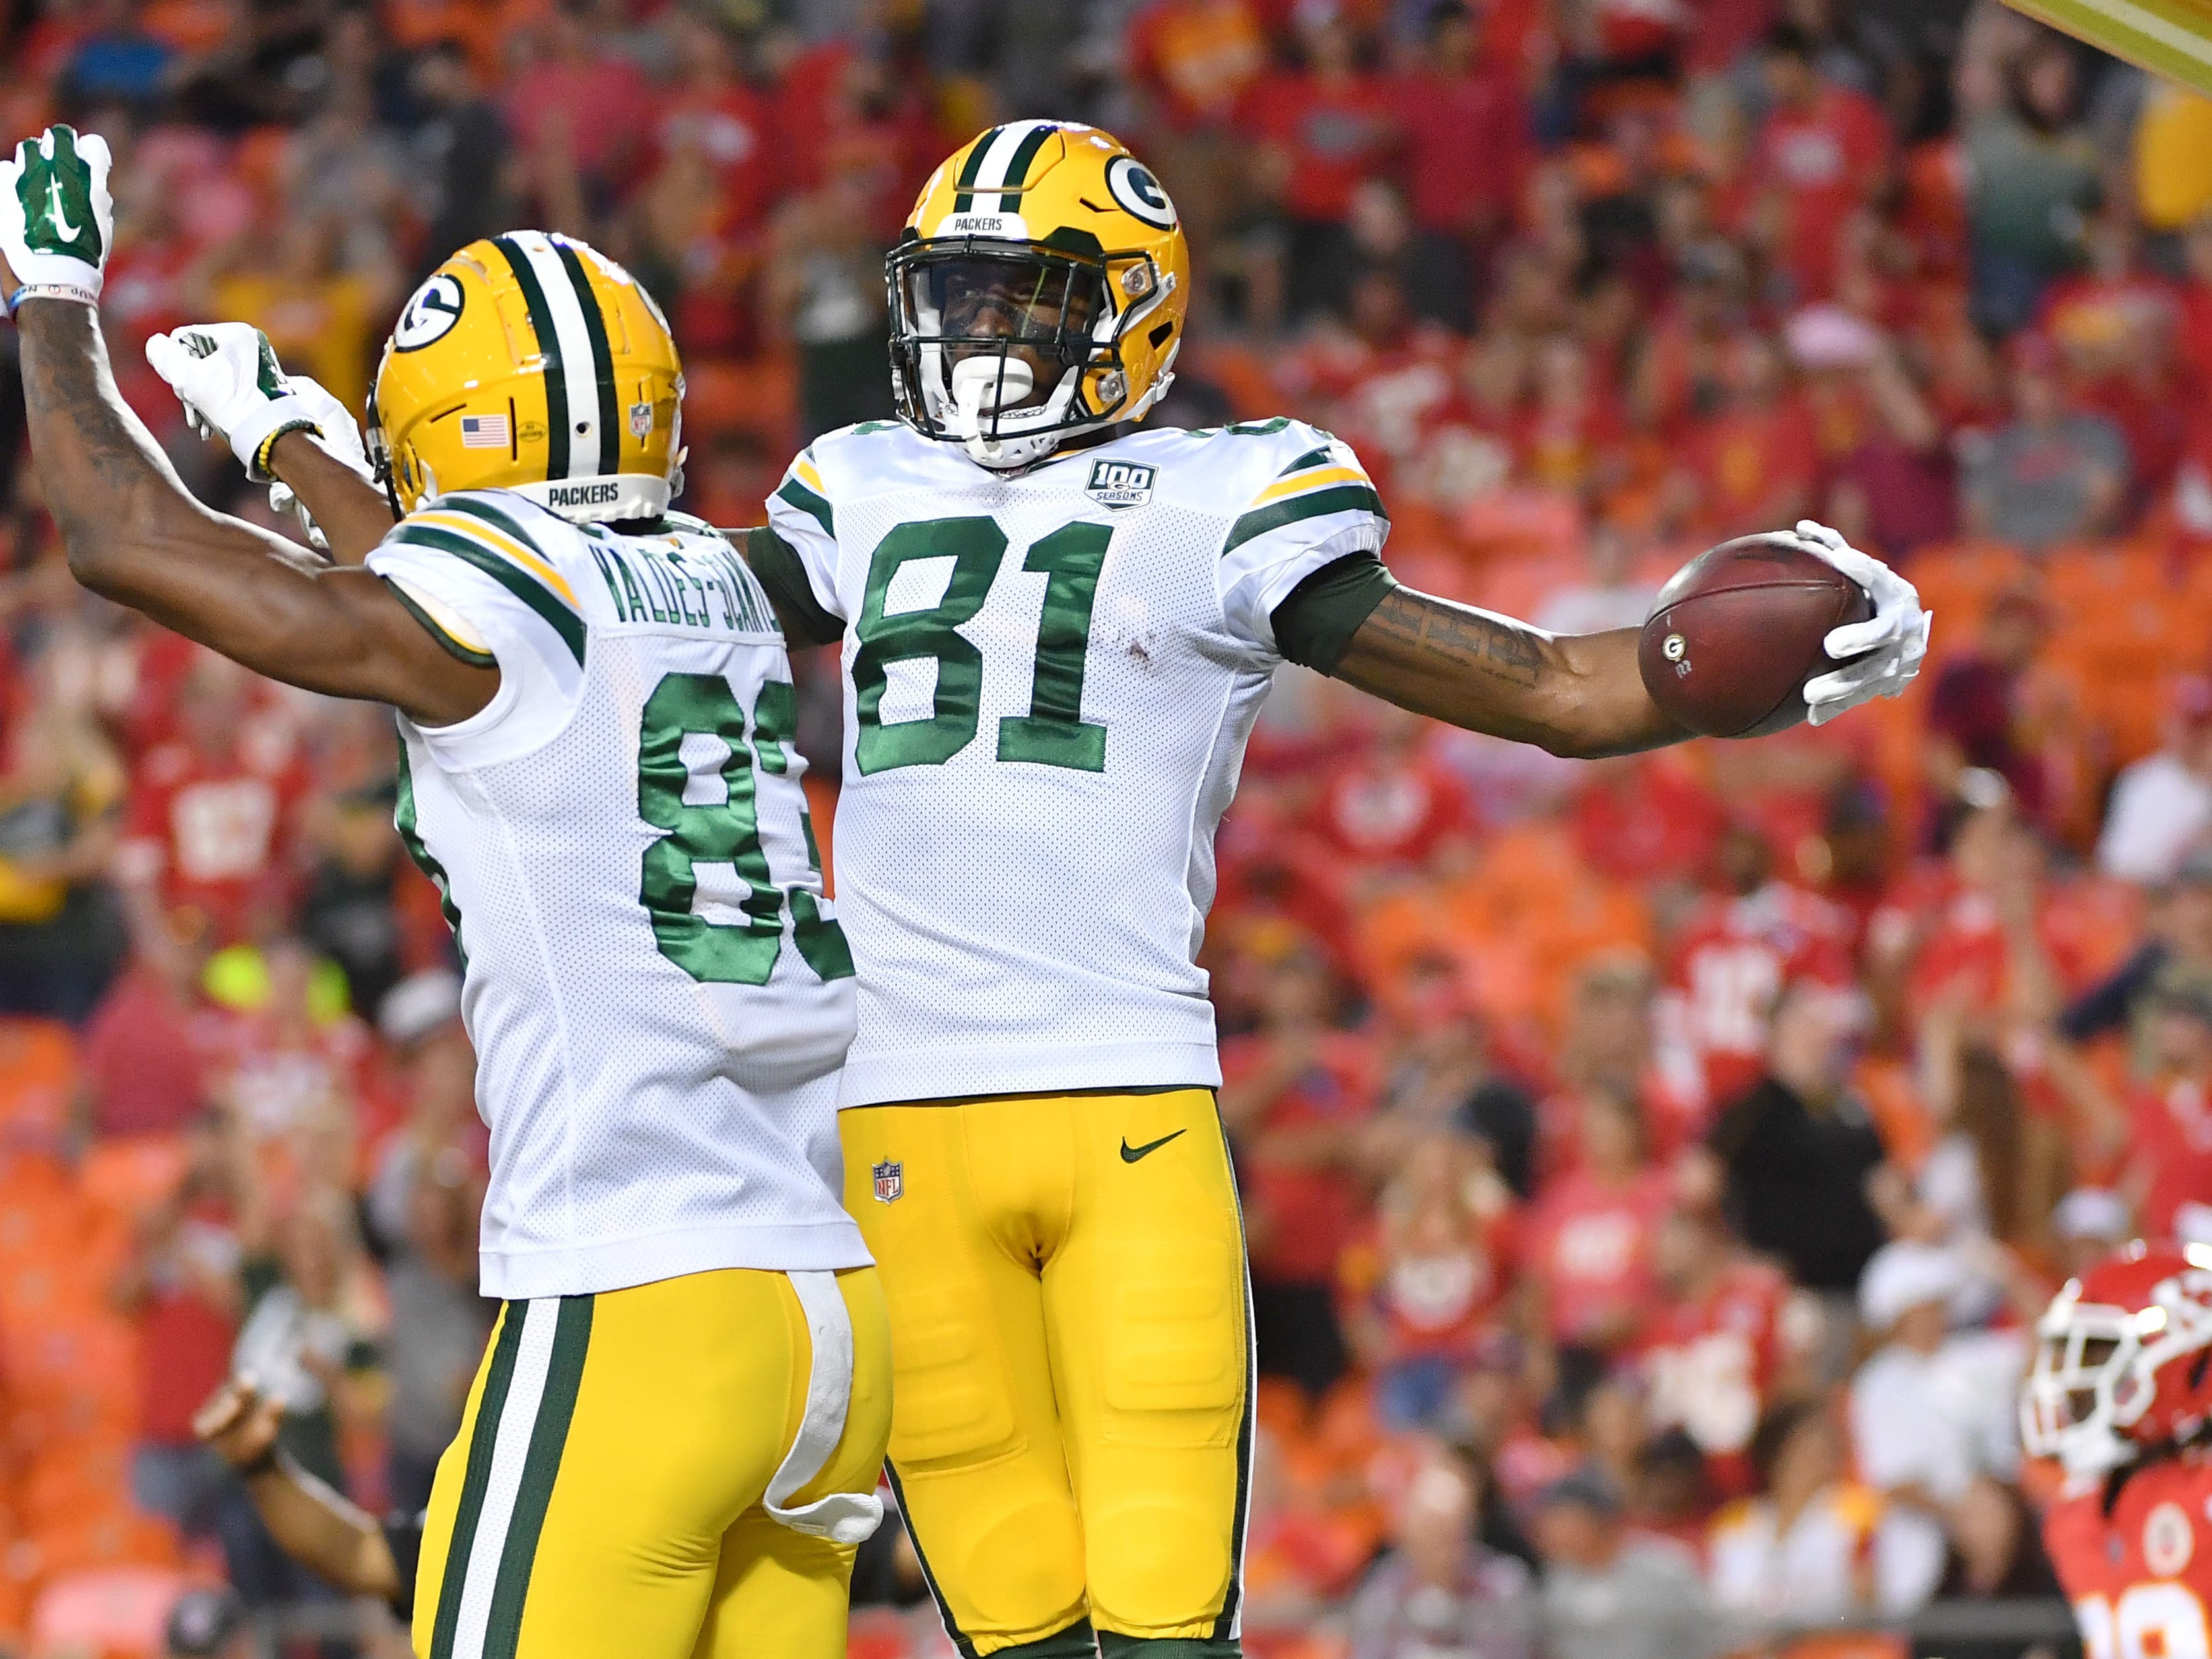 Aug 30, 2018; Kansas City, MO, USA; Green Bay Packers wide receiver Geronimo Allison (81) celebrates with wide receiver Marquez Valdes-Scantling (83) after scoring during the first half against the Kansas City Chiefs at Arrowhead Stadium.